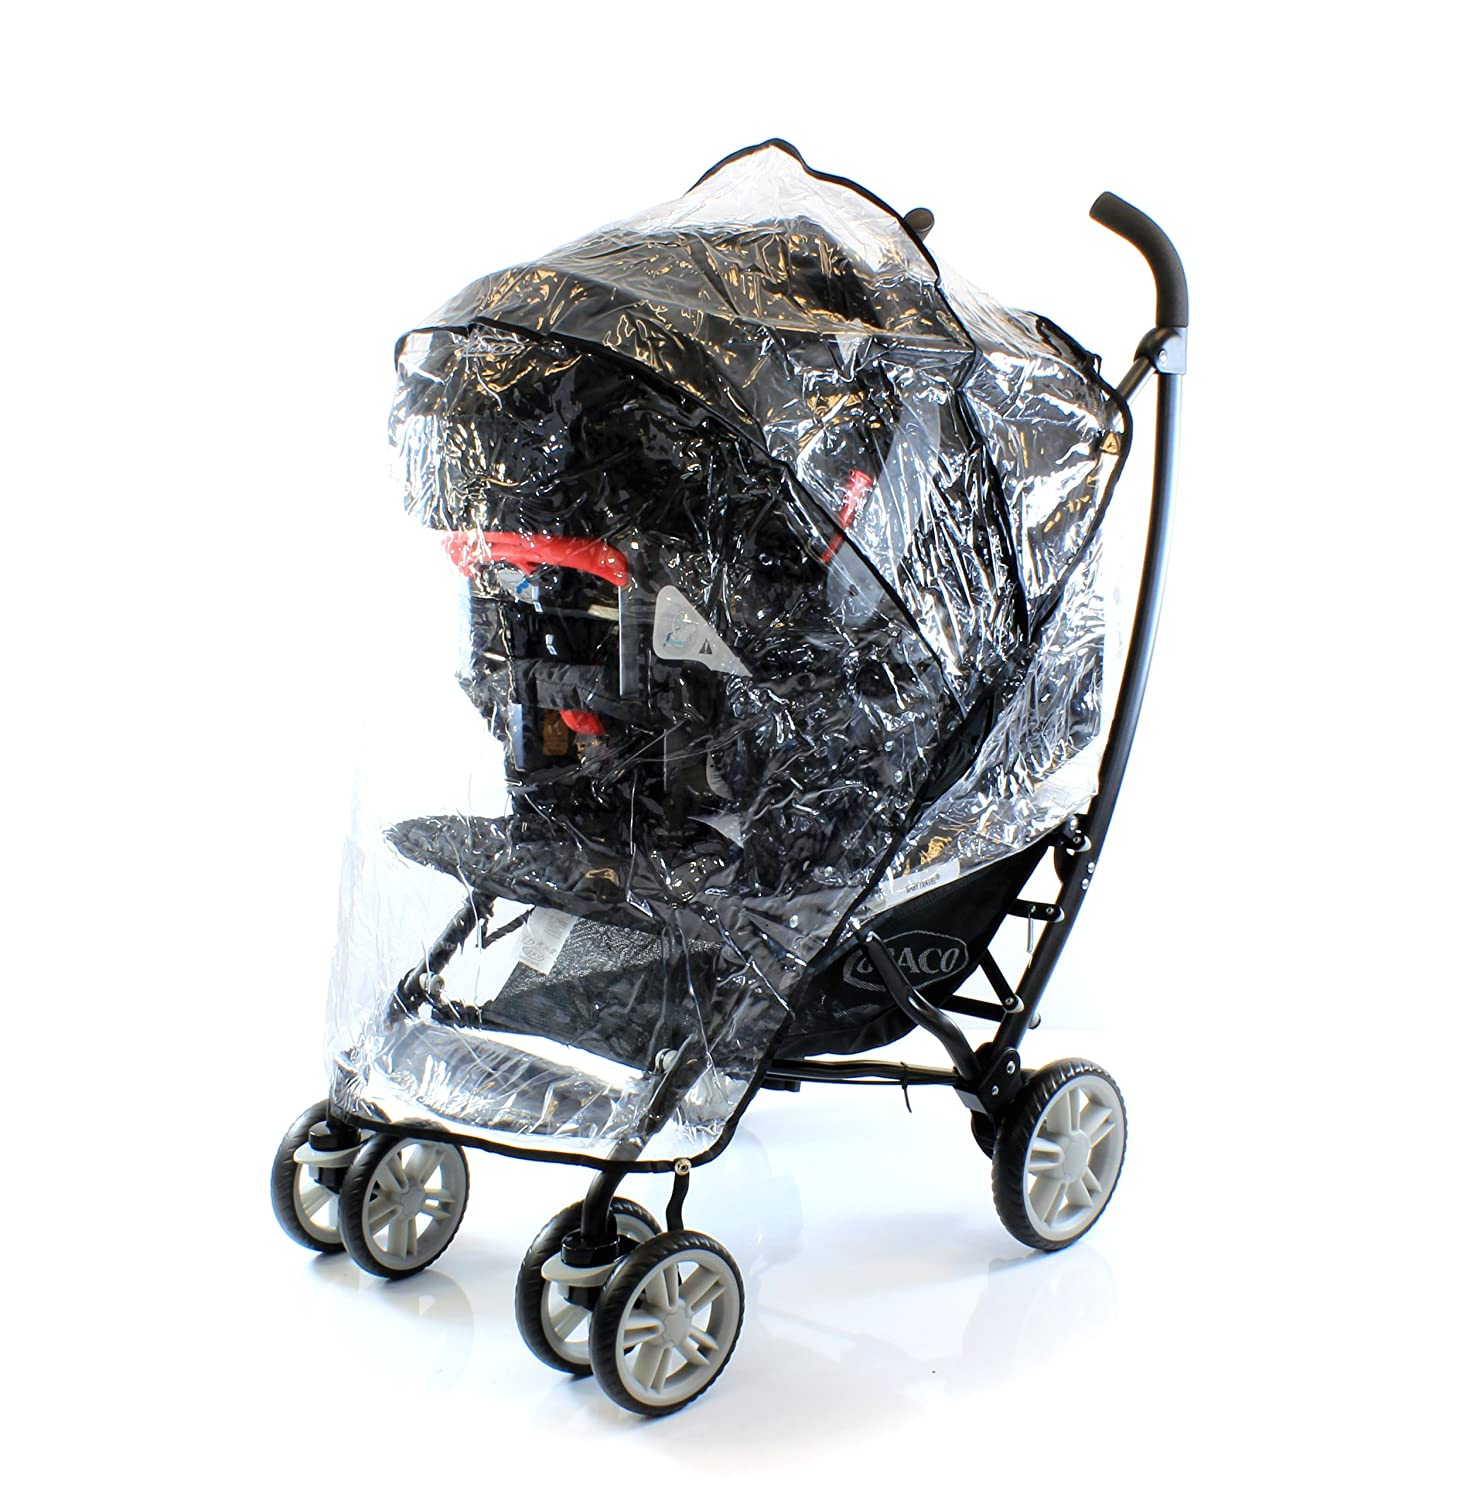 Graco Mosaic Stroller And Travel System Also fits Mirage Hauck Shopper Amazon Baby